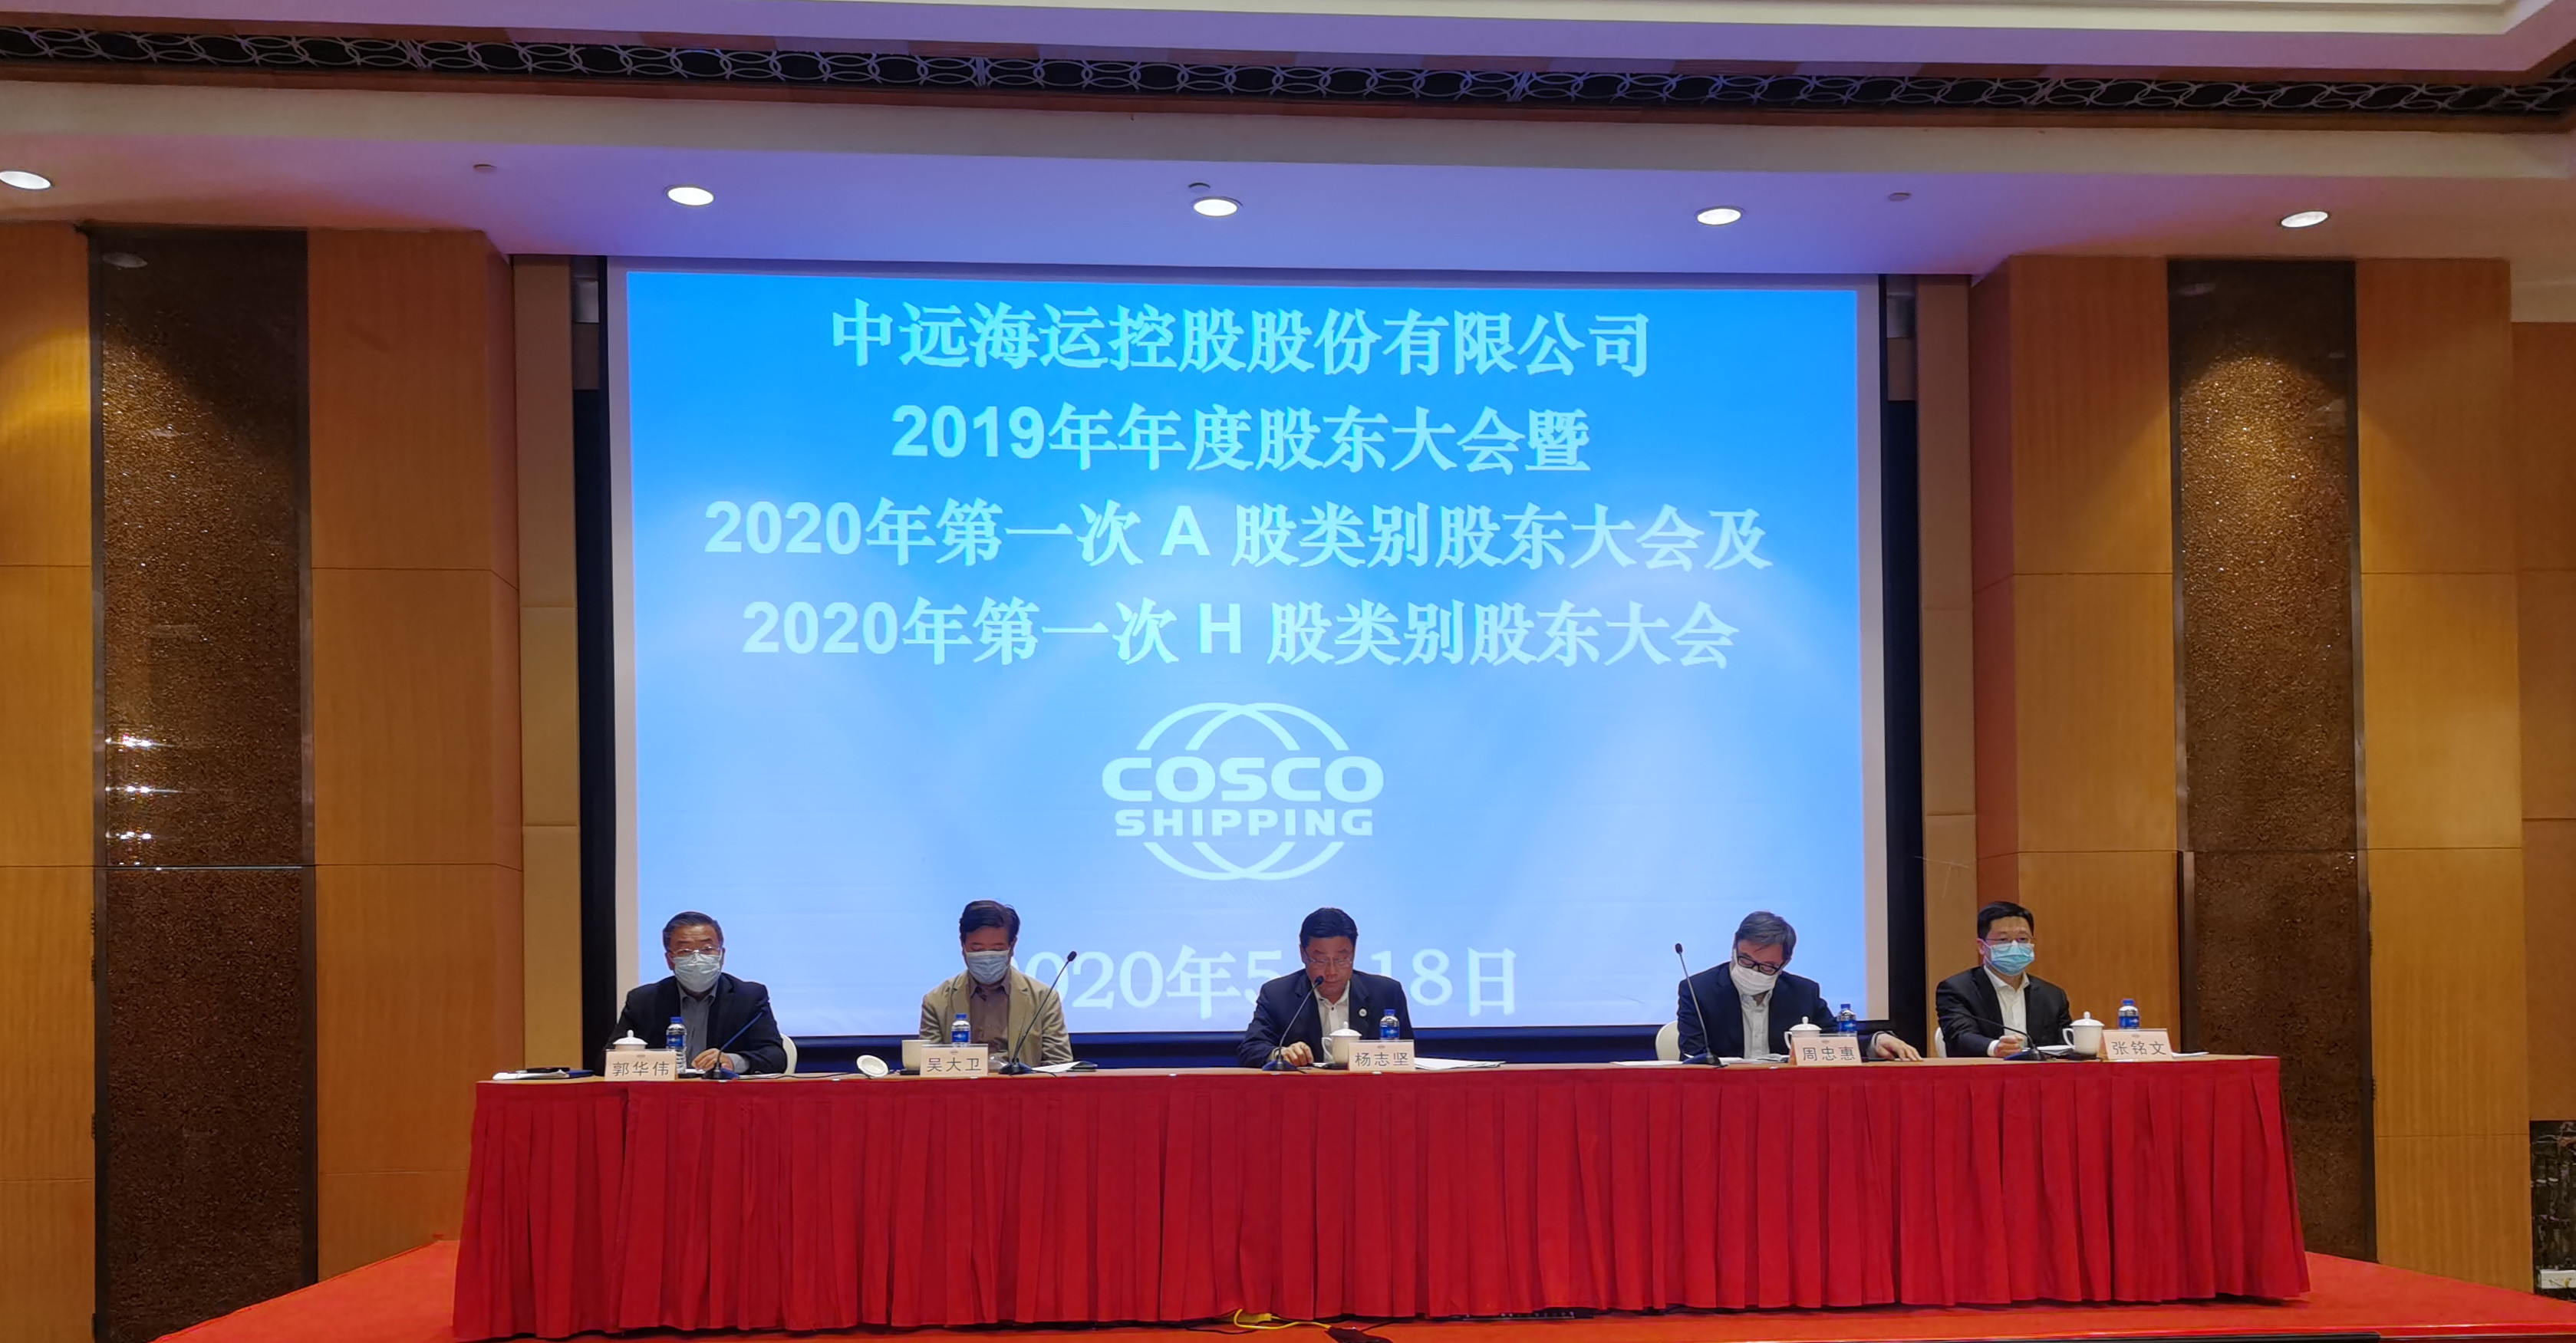 COSCO SHIPPING Holdings Co., Ltd. held the Annual General Meeting, the A Share Class Meeting and the H Share Class Meeting